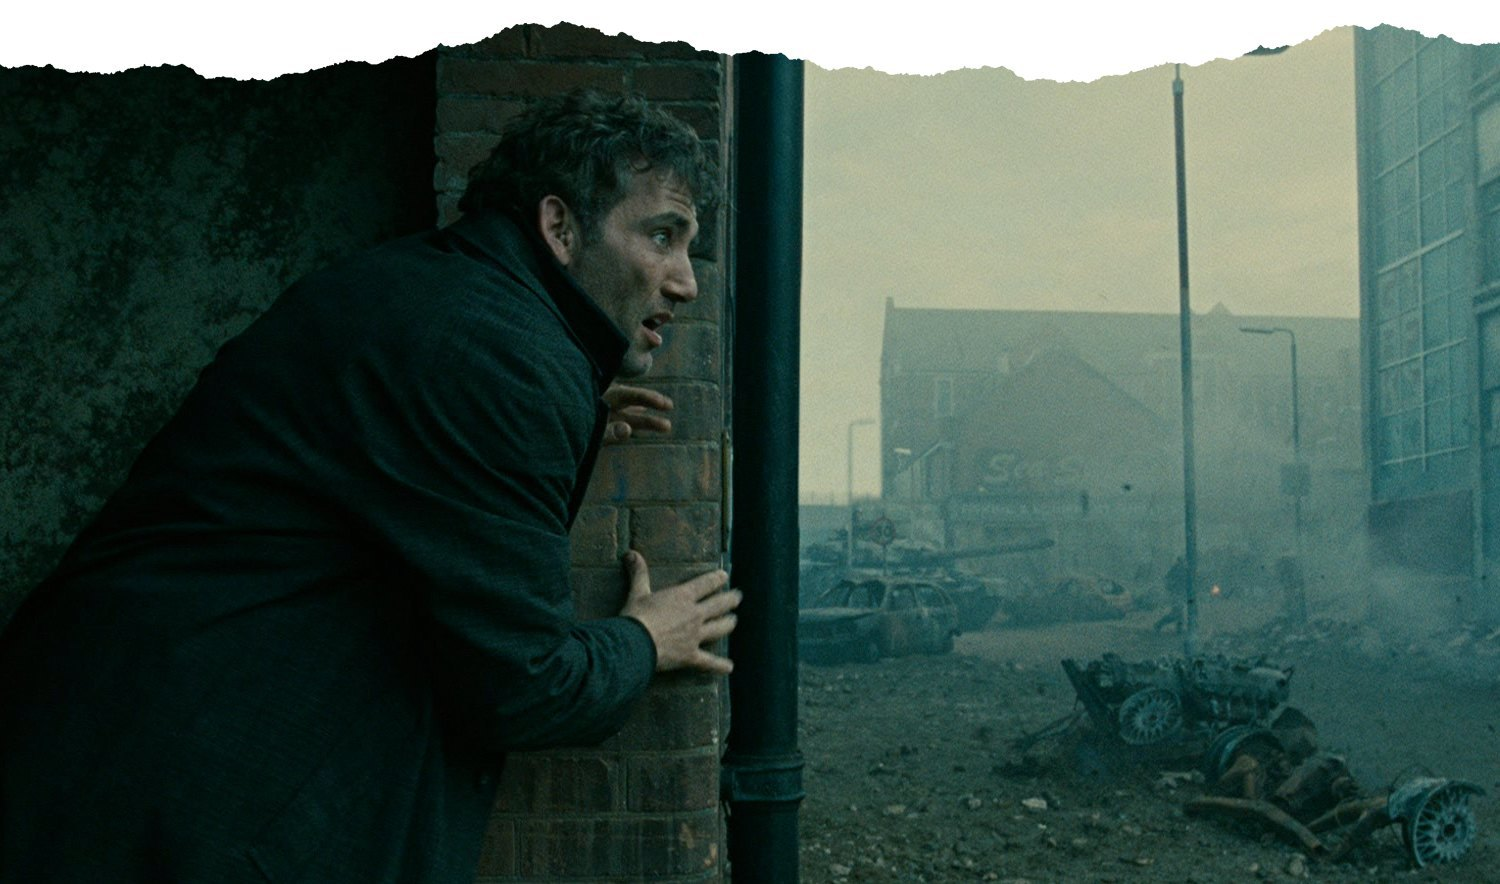 From zombies to Mad Max: the real fears behind apocalyptic movies. Image 16.